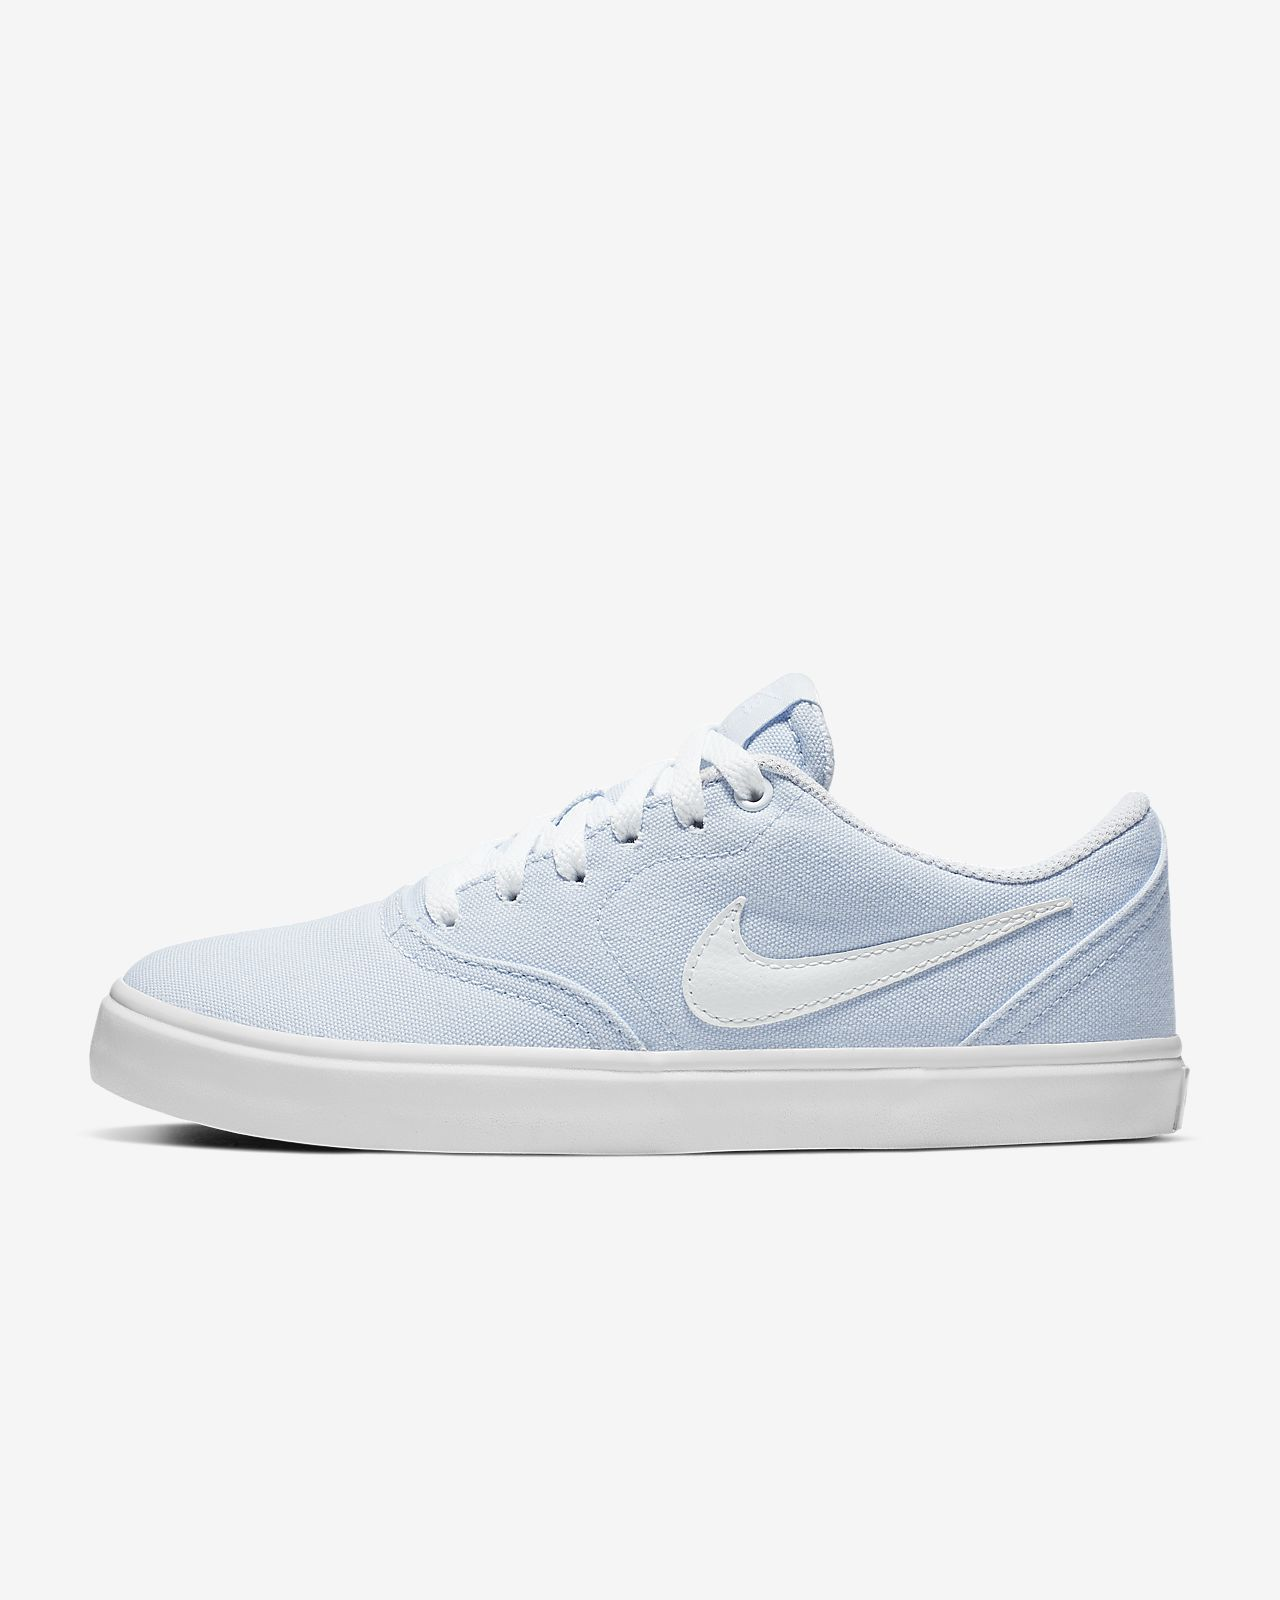 Nike SB Check Solarsoft Canvas Women's Skateboarding Shoe